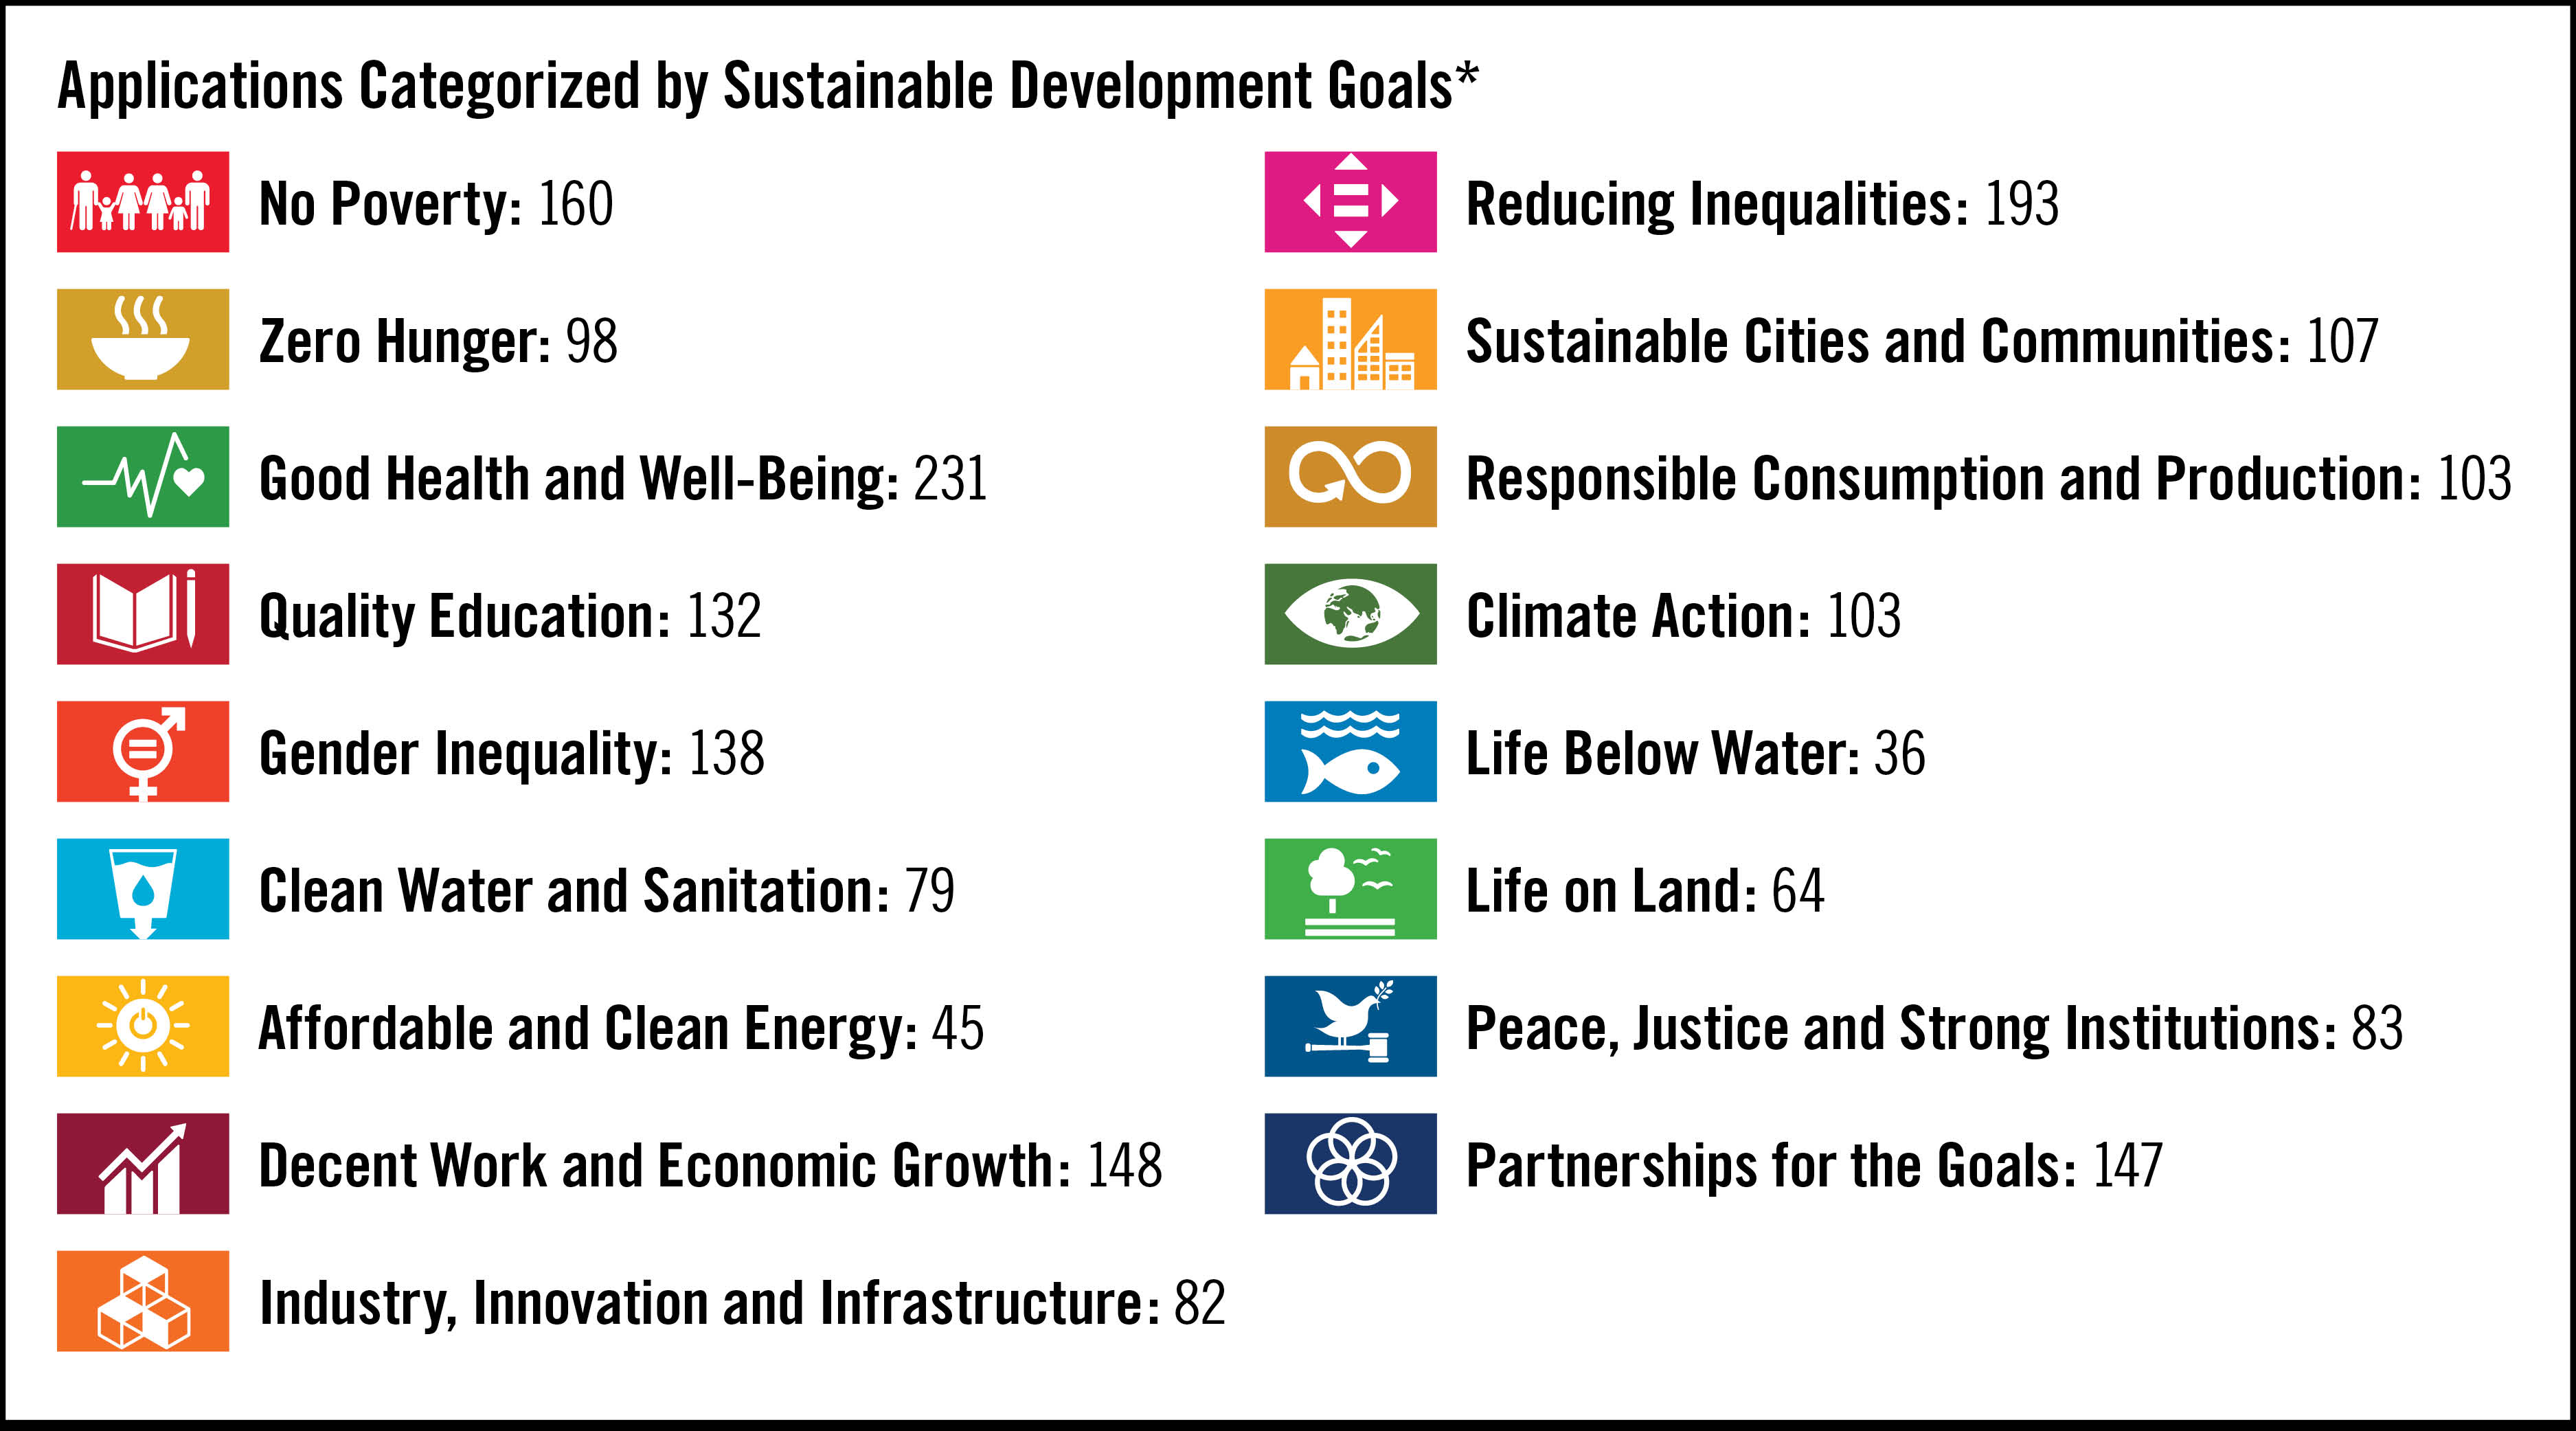 Applications_Categorize_By_Sustainable_Development_Goals_Infographic_Raw_Data_Table_Link_Below